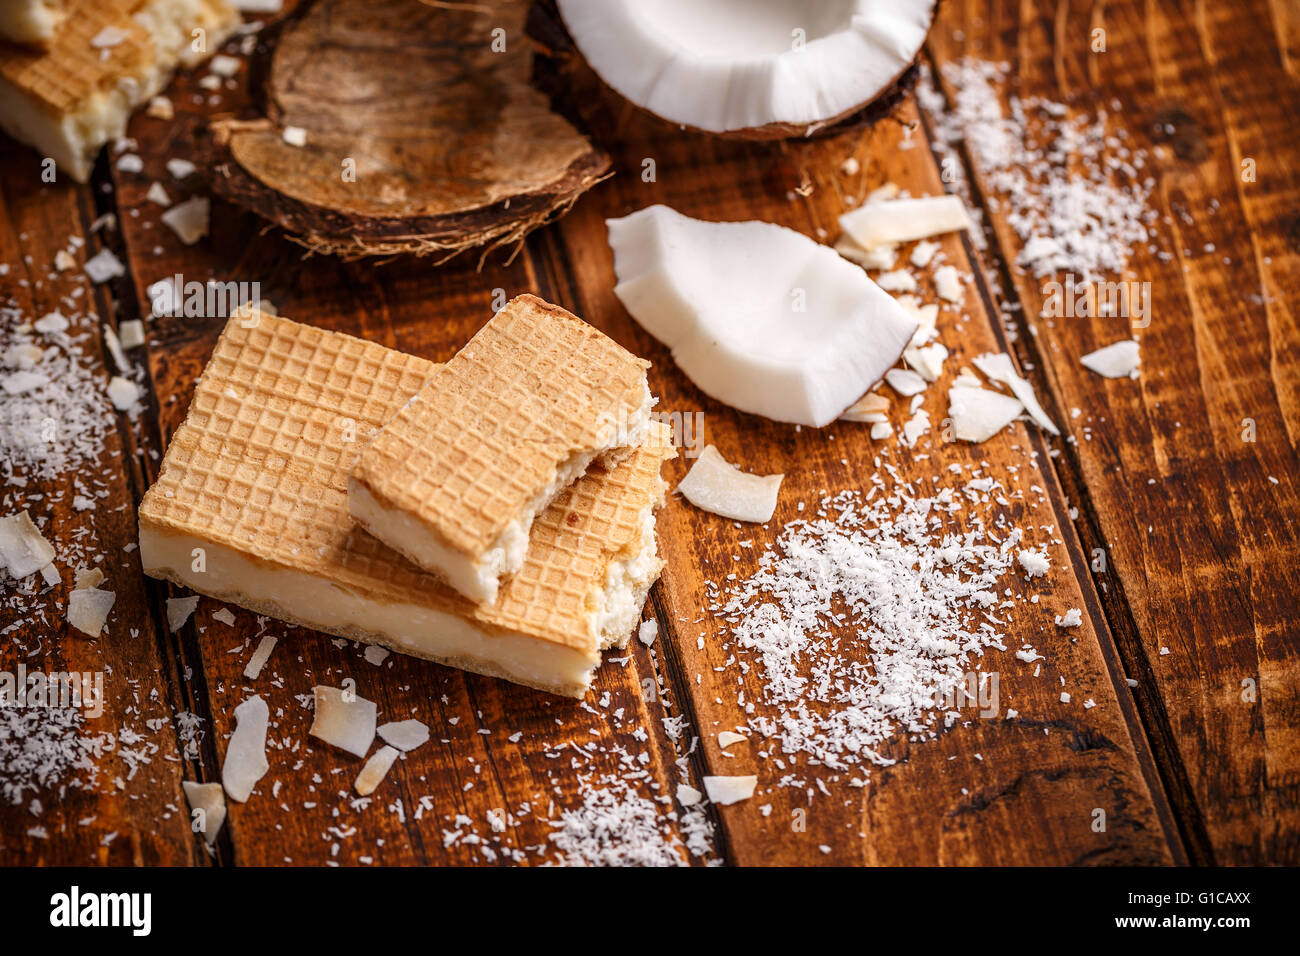 Two sheets of wafers filling with white chocolate - Stock Image